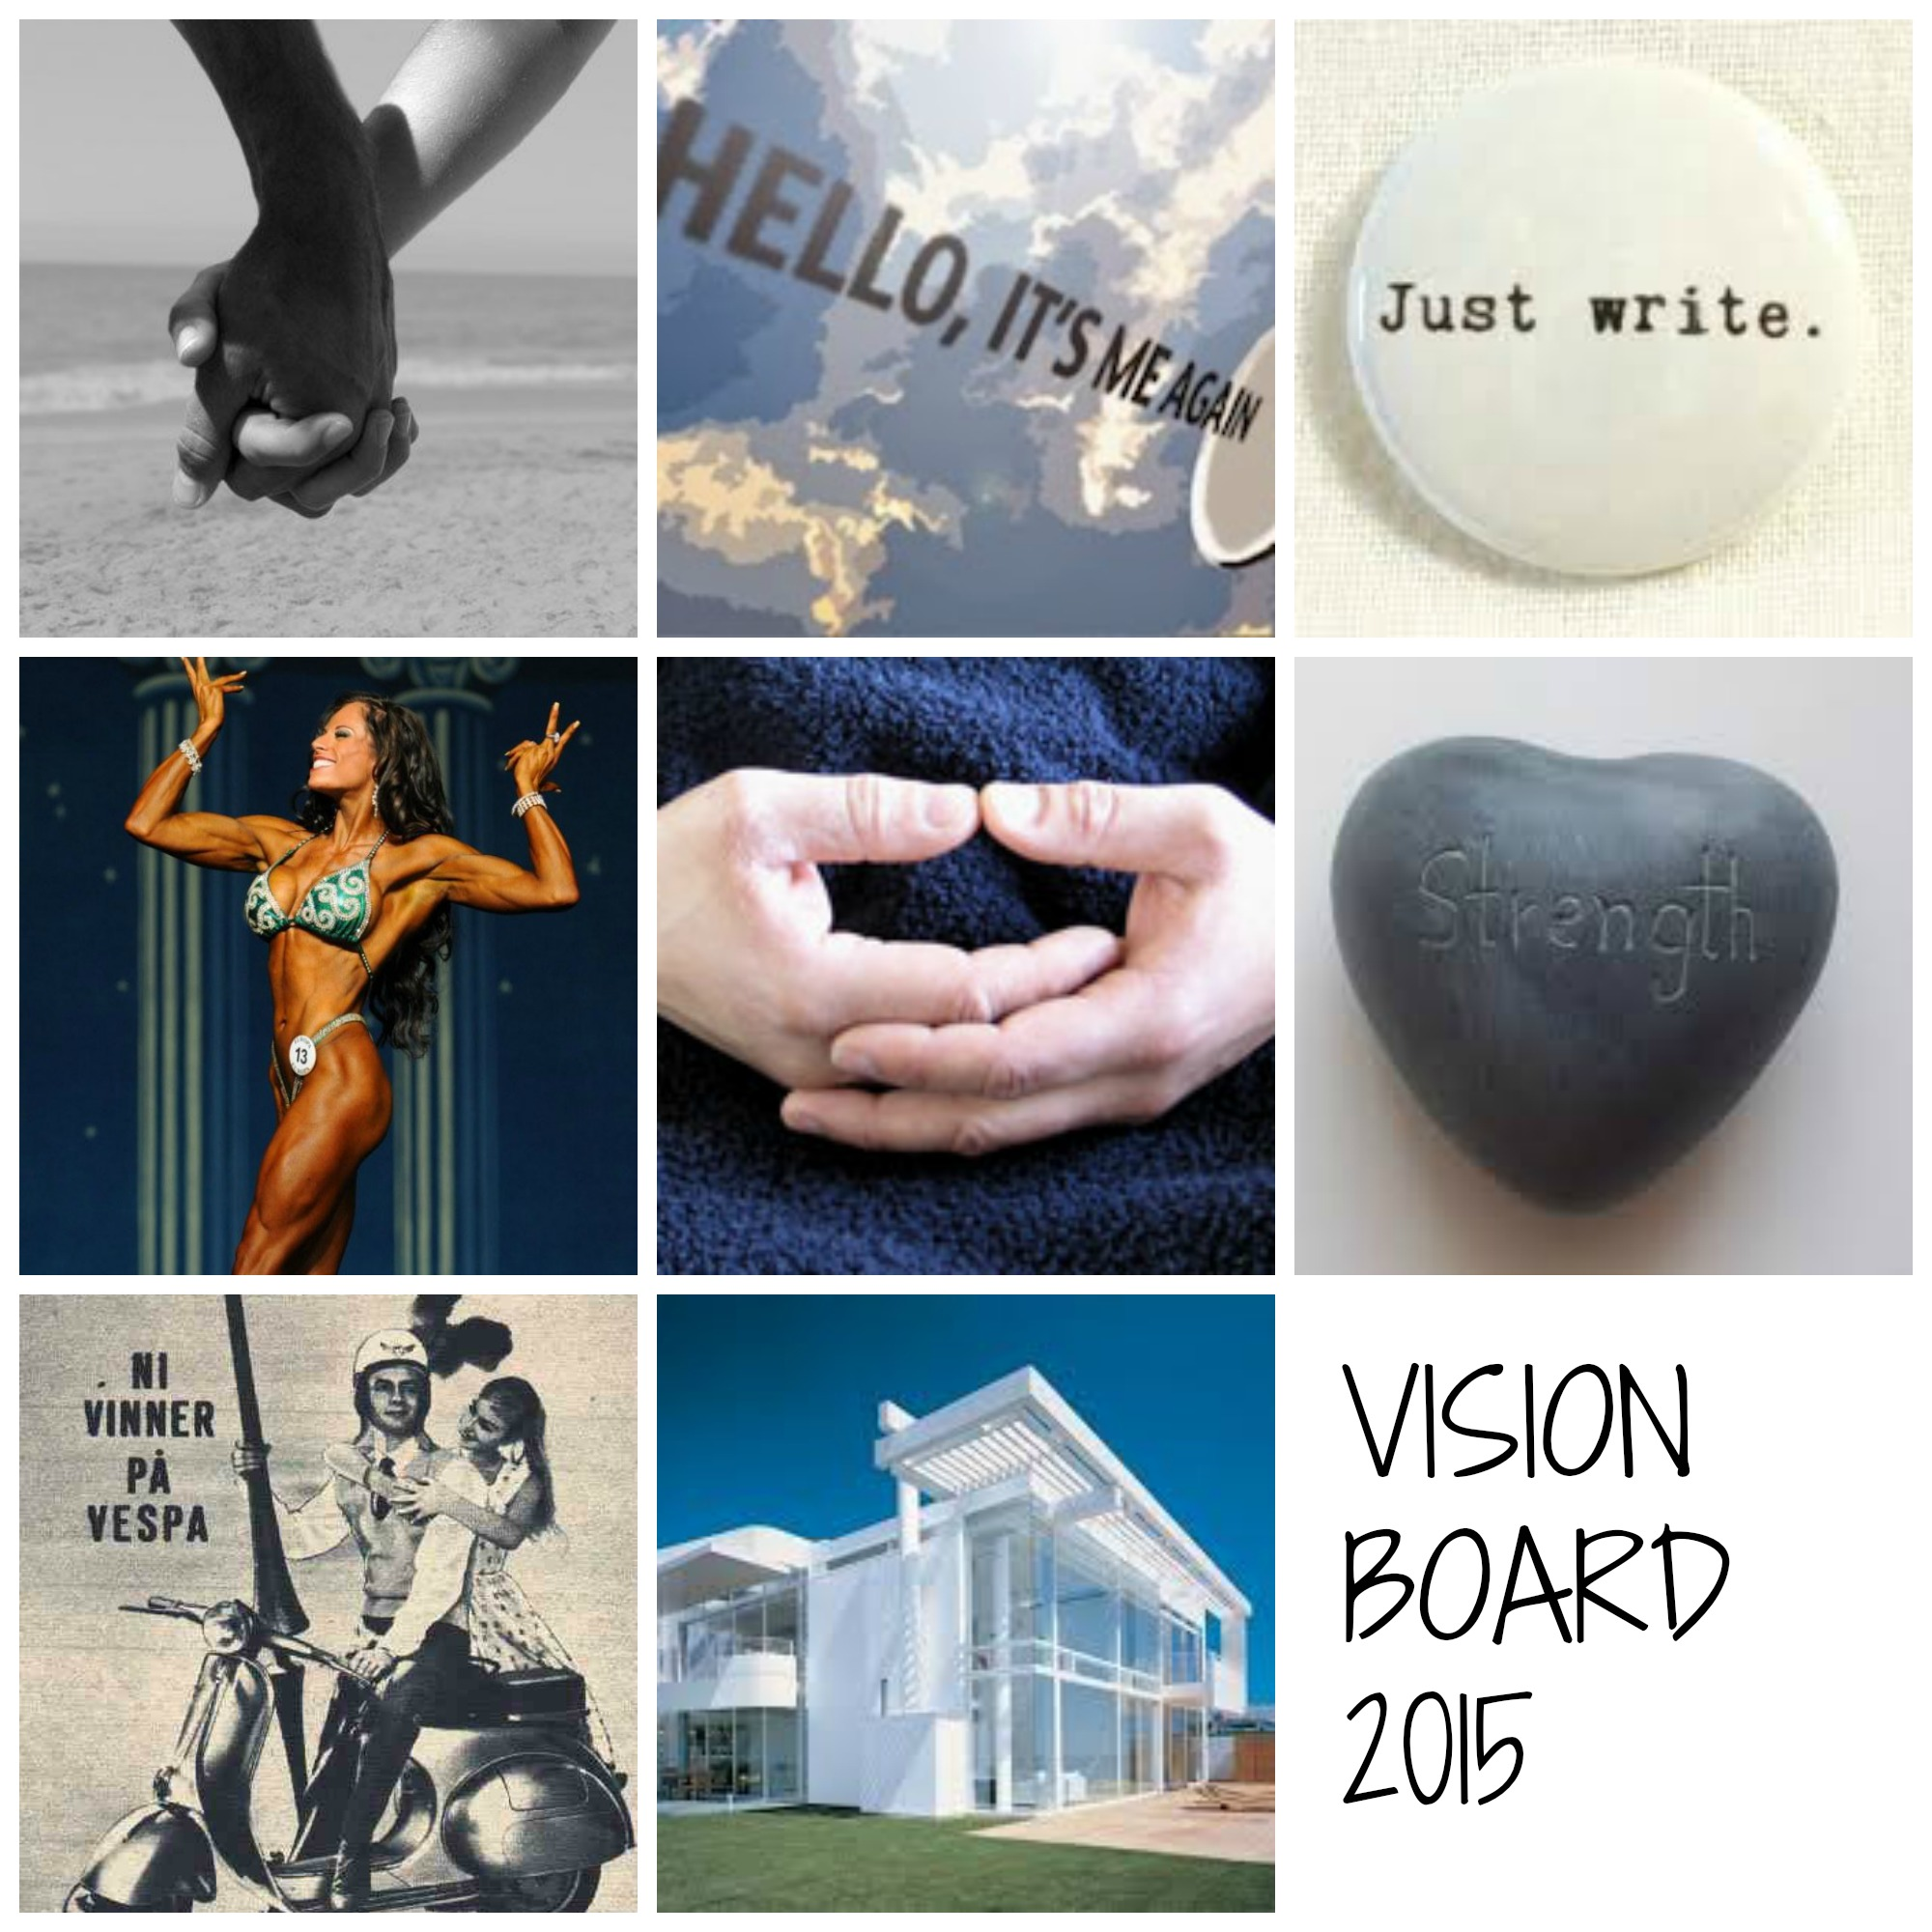 My 2015 Digital Vision Board